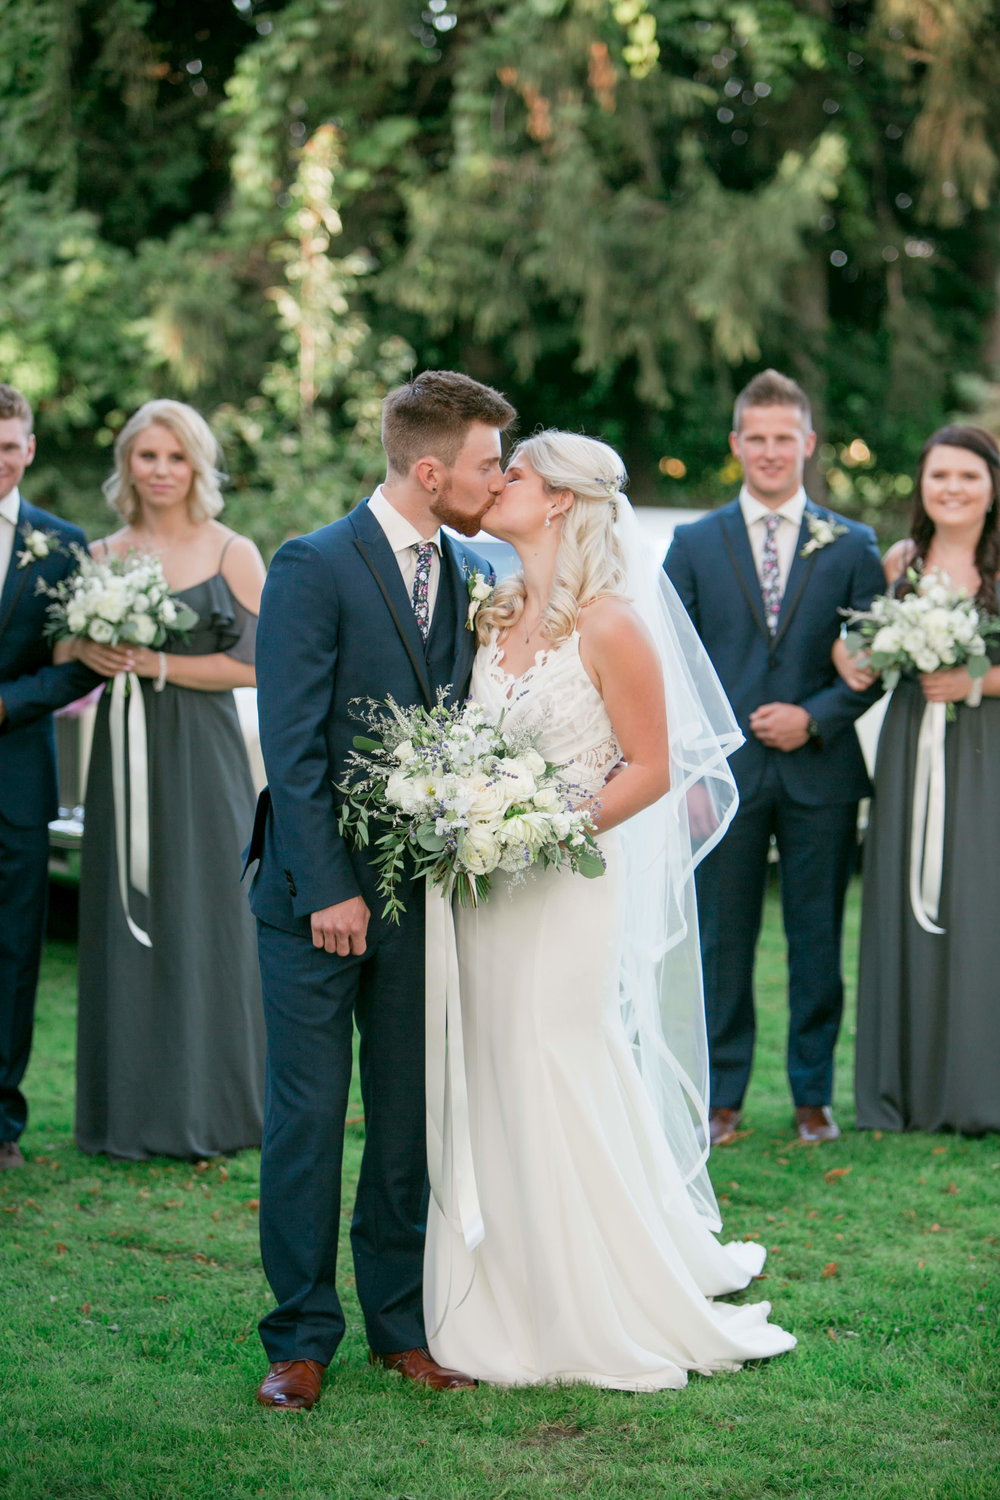 Maddy___Brandon___Daniel_Ricci_Weddings_High_Res._Finals_394.jpg